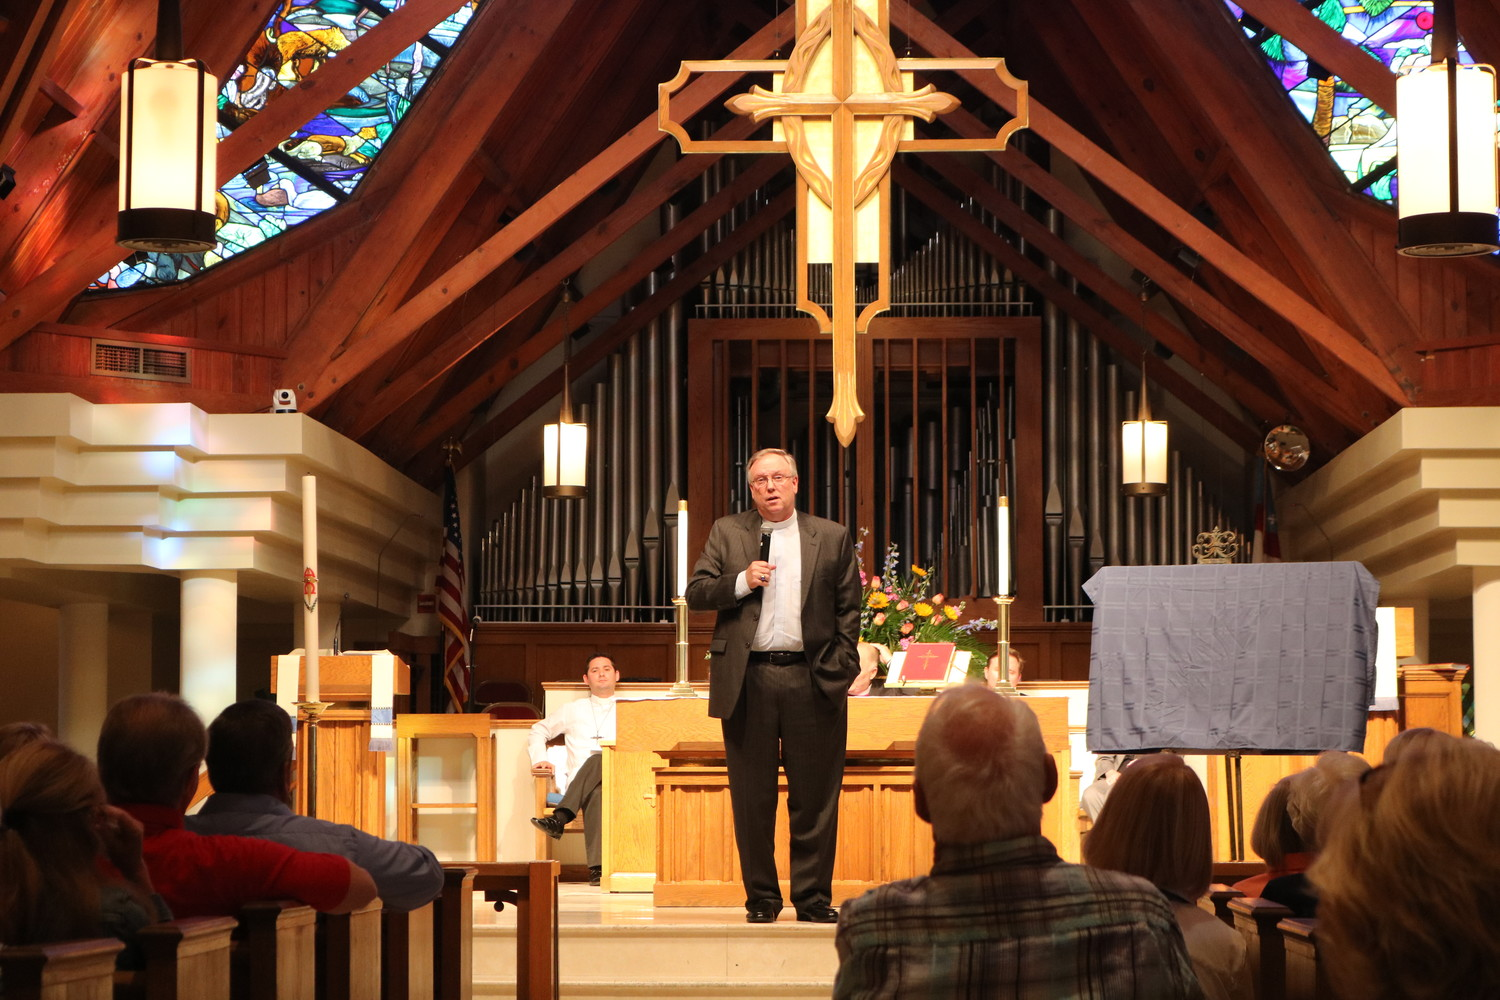 Rev. Richard Westbury, Jr. delivers a speech at his retirement ceremony at Christ Church on April 6.